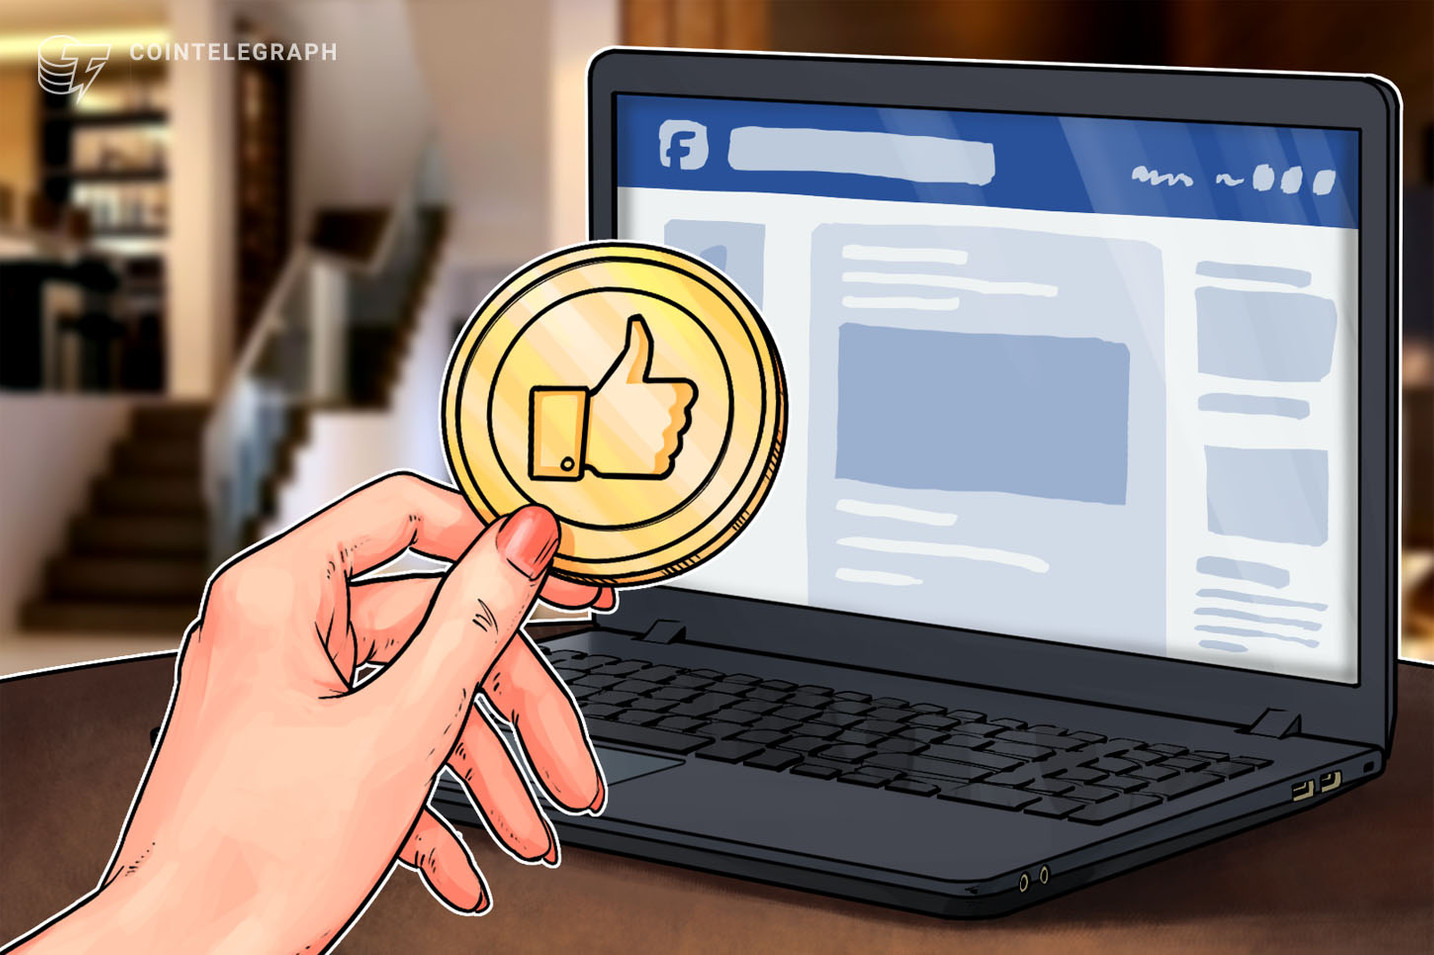 Bloomberg: Facebook is Developing a Cryptocurrency for Transfers in WhatsApp